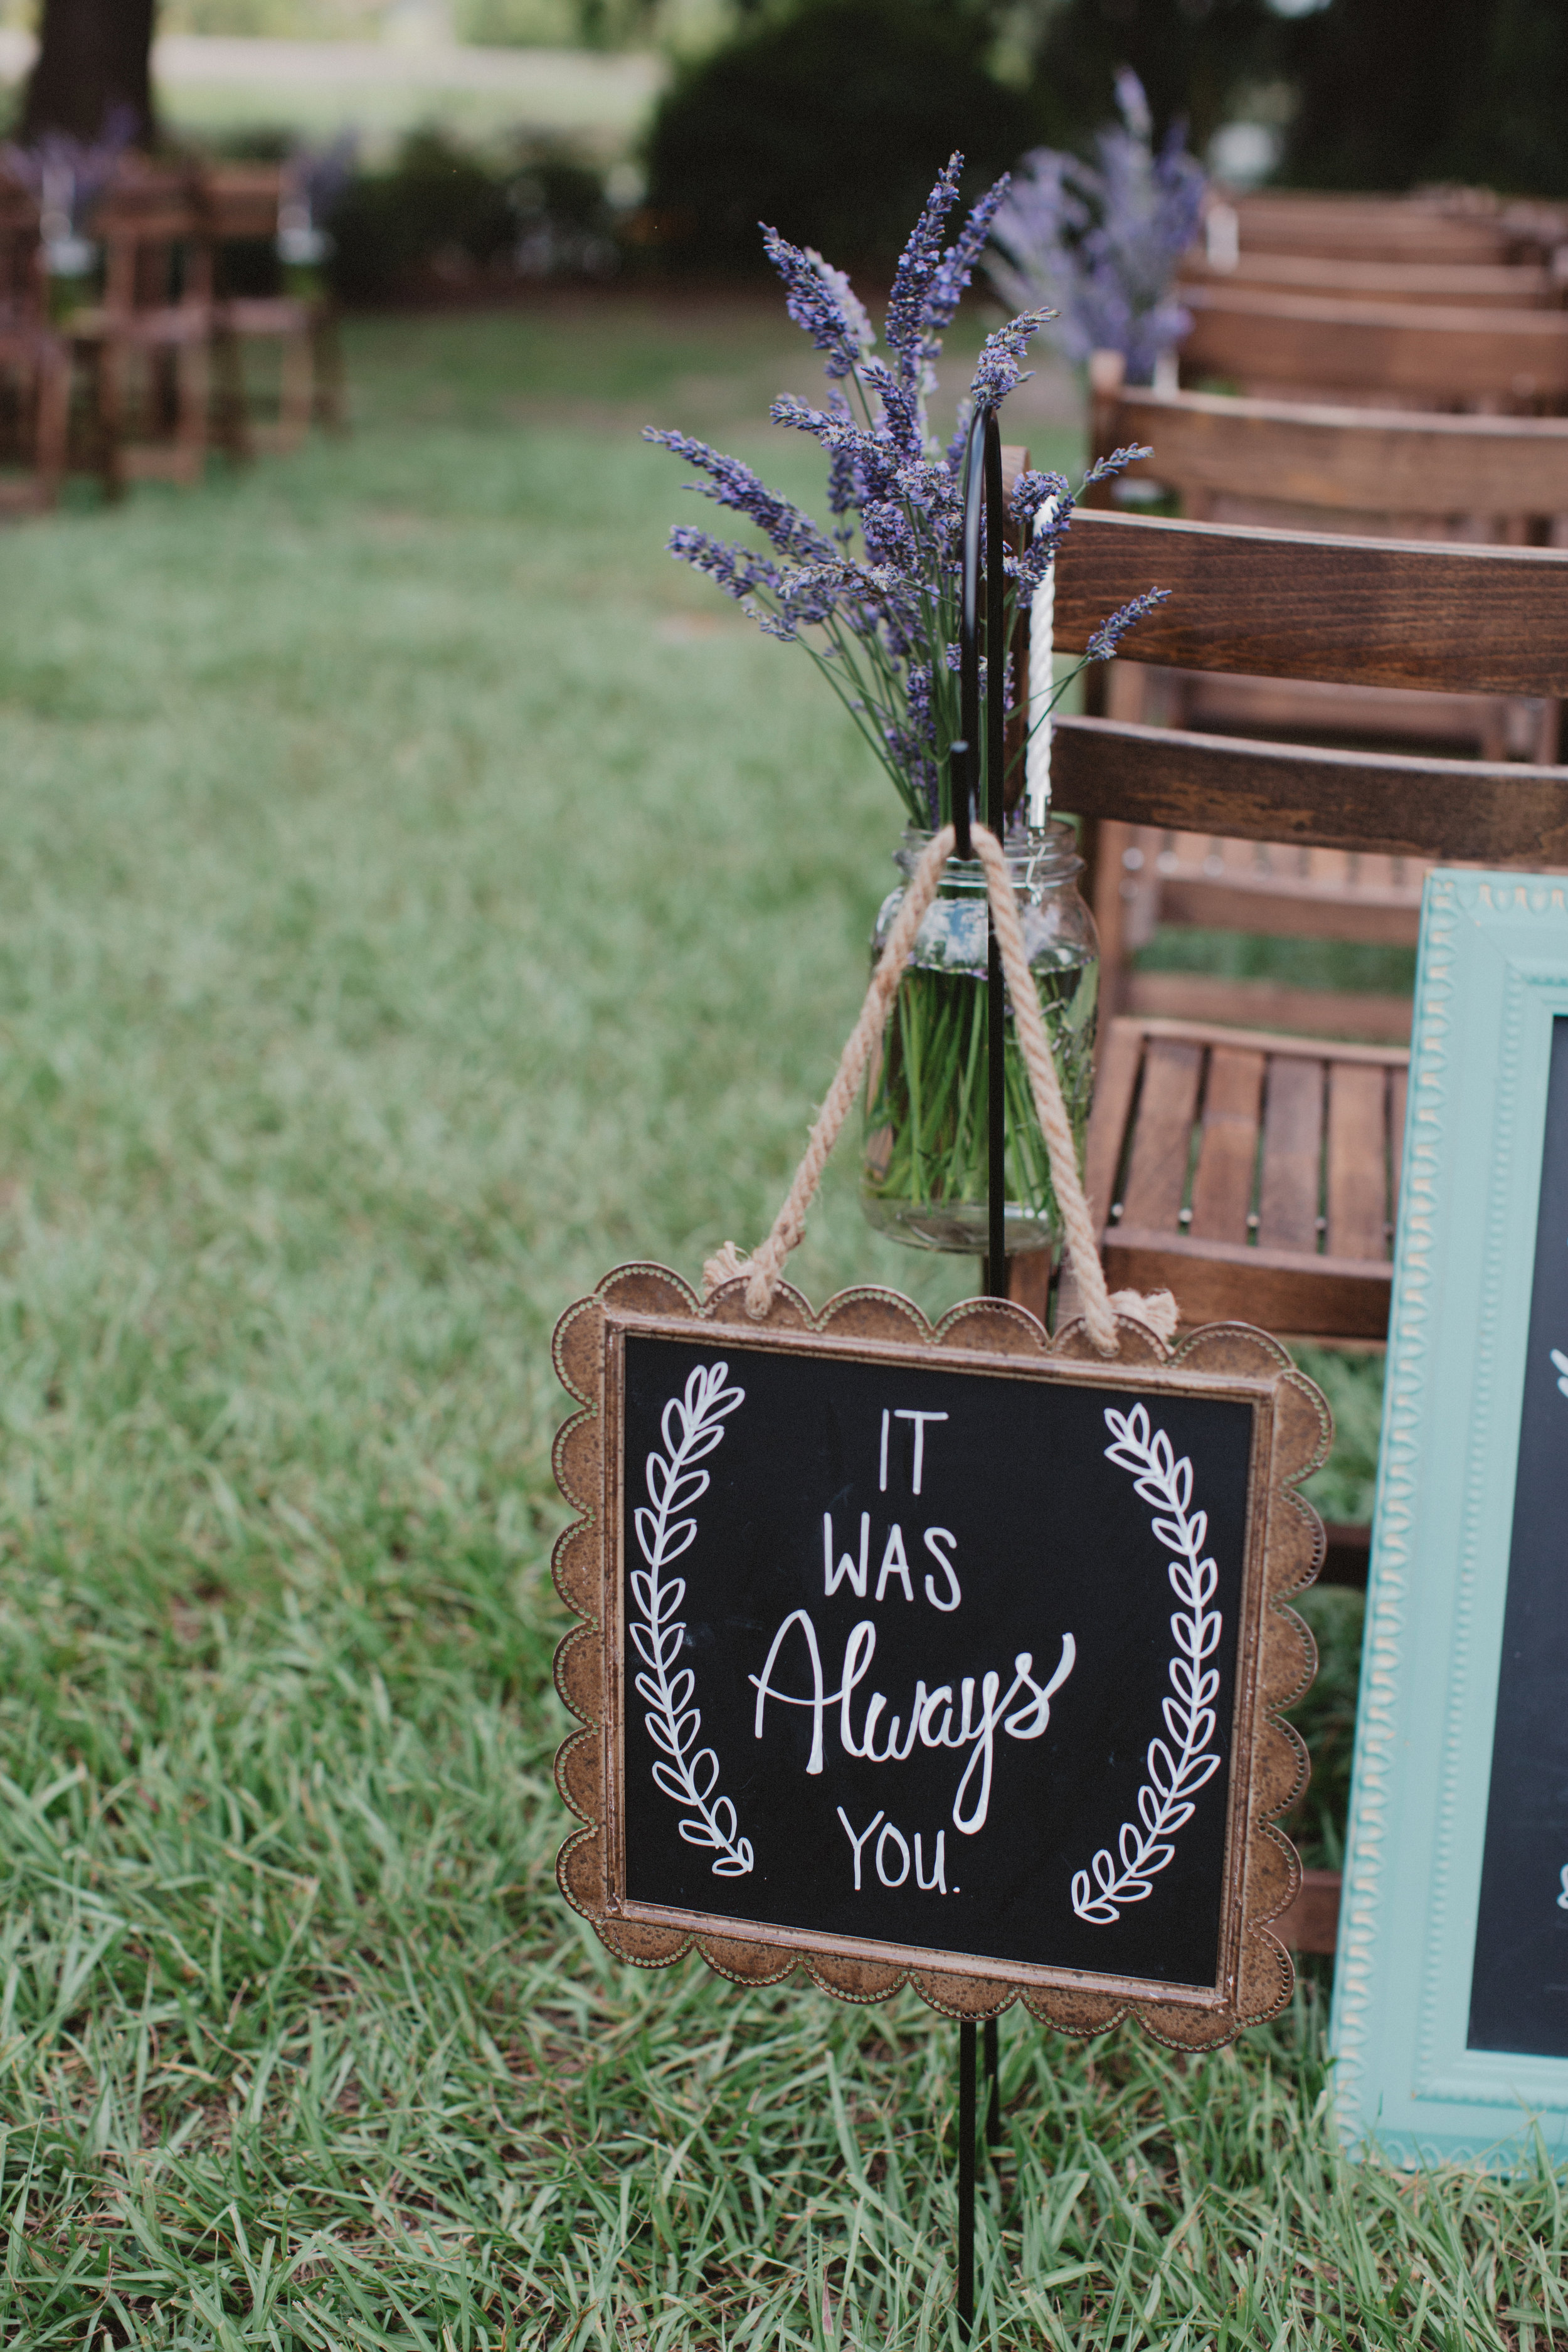 Lowcountry Wedding at Magnolia Plantation and Gardens in Charleston, Sc